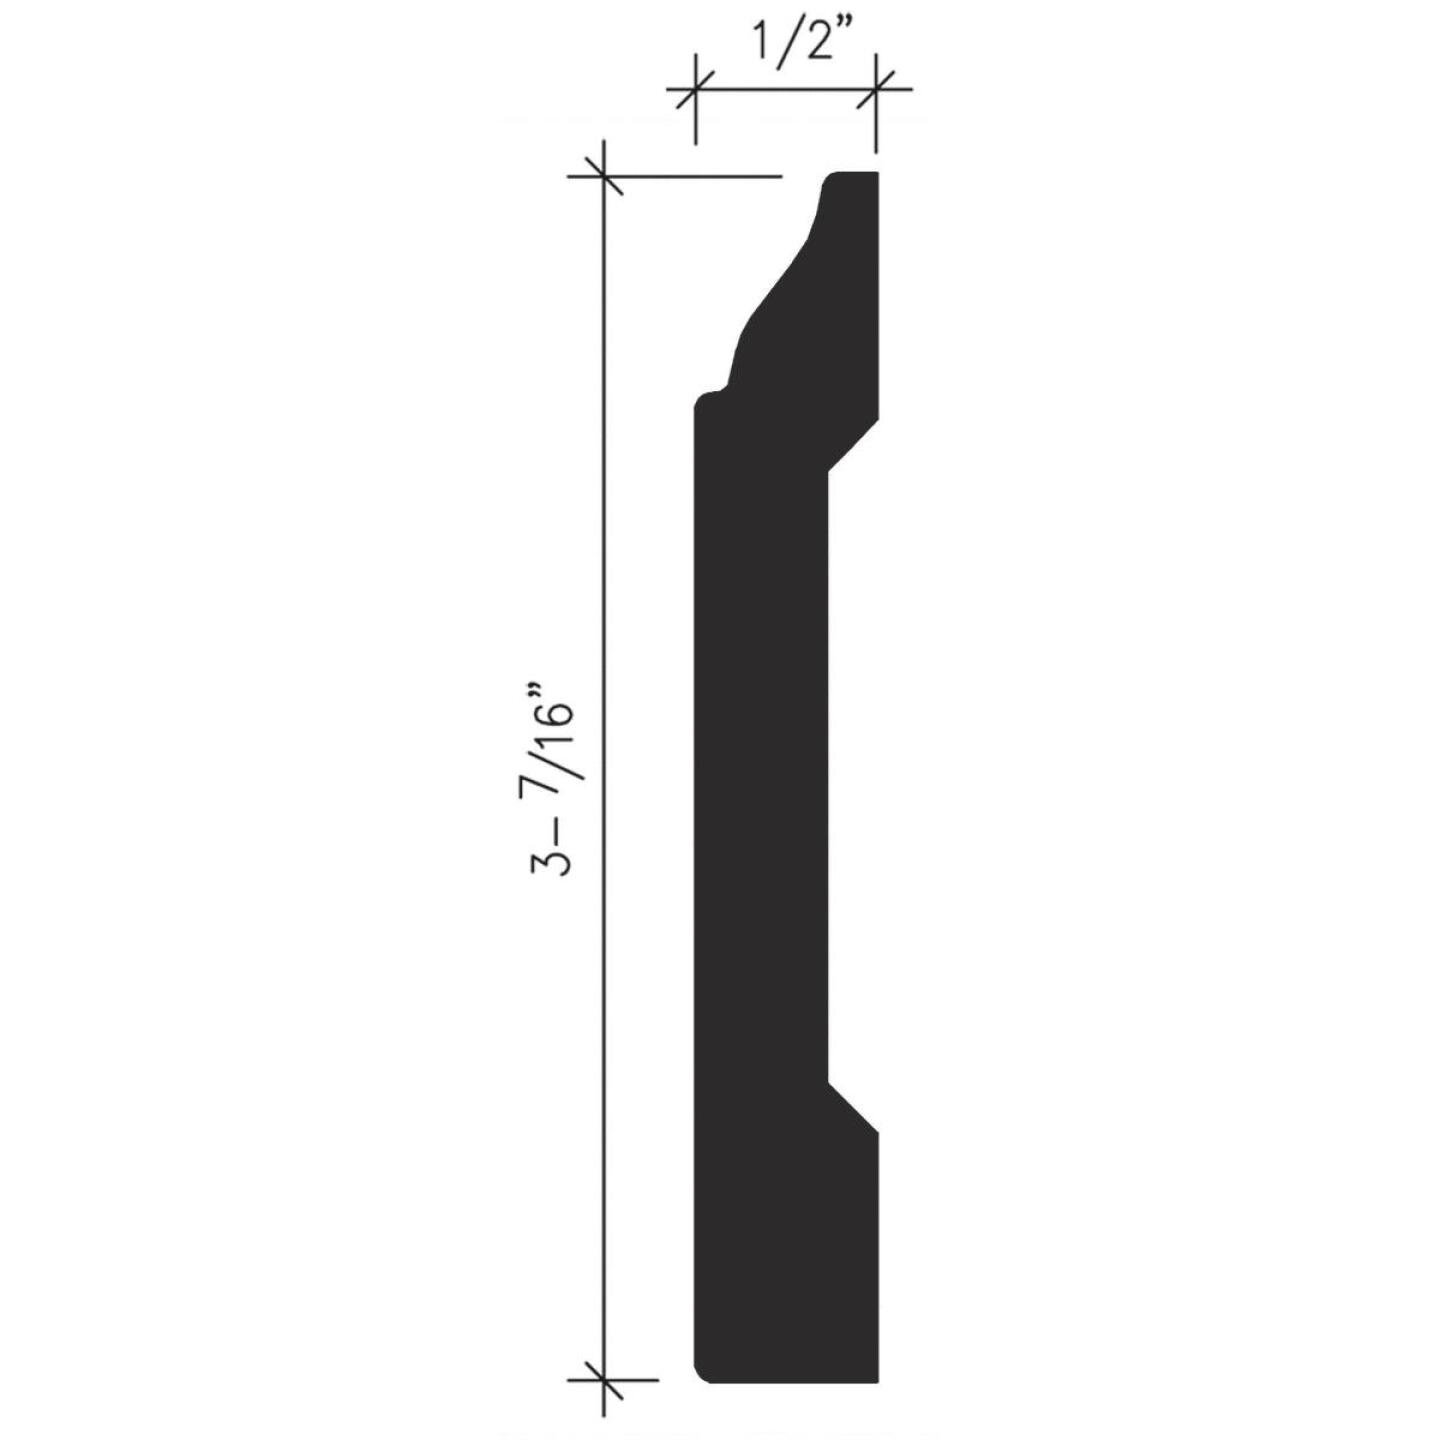 Inteplast Building Products 1/2 In. W. x 3-7/16 In. H. x 8 Ft. L. Majestic Oak Polystyrene Colonial Base Molding Image 4